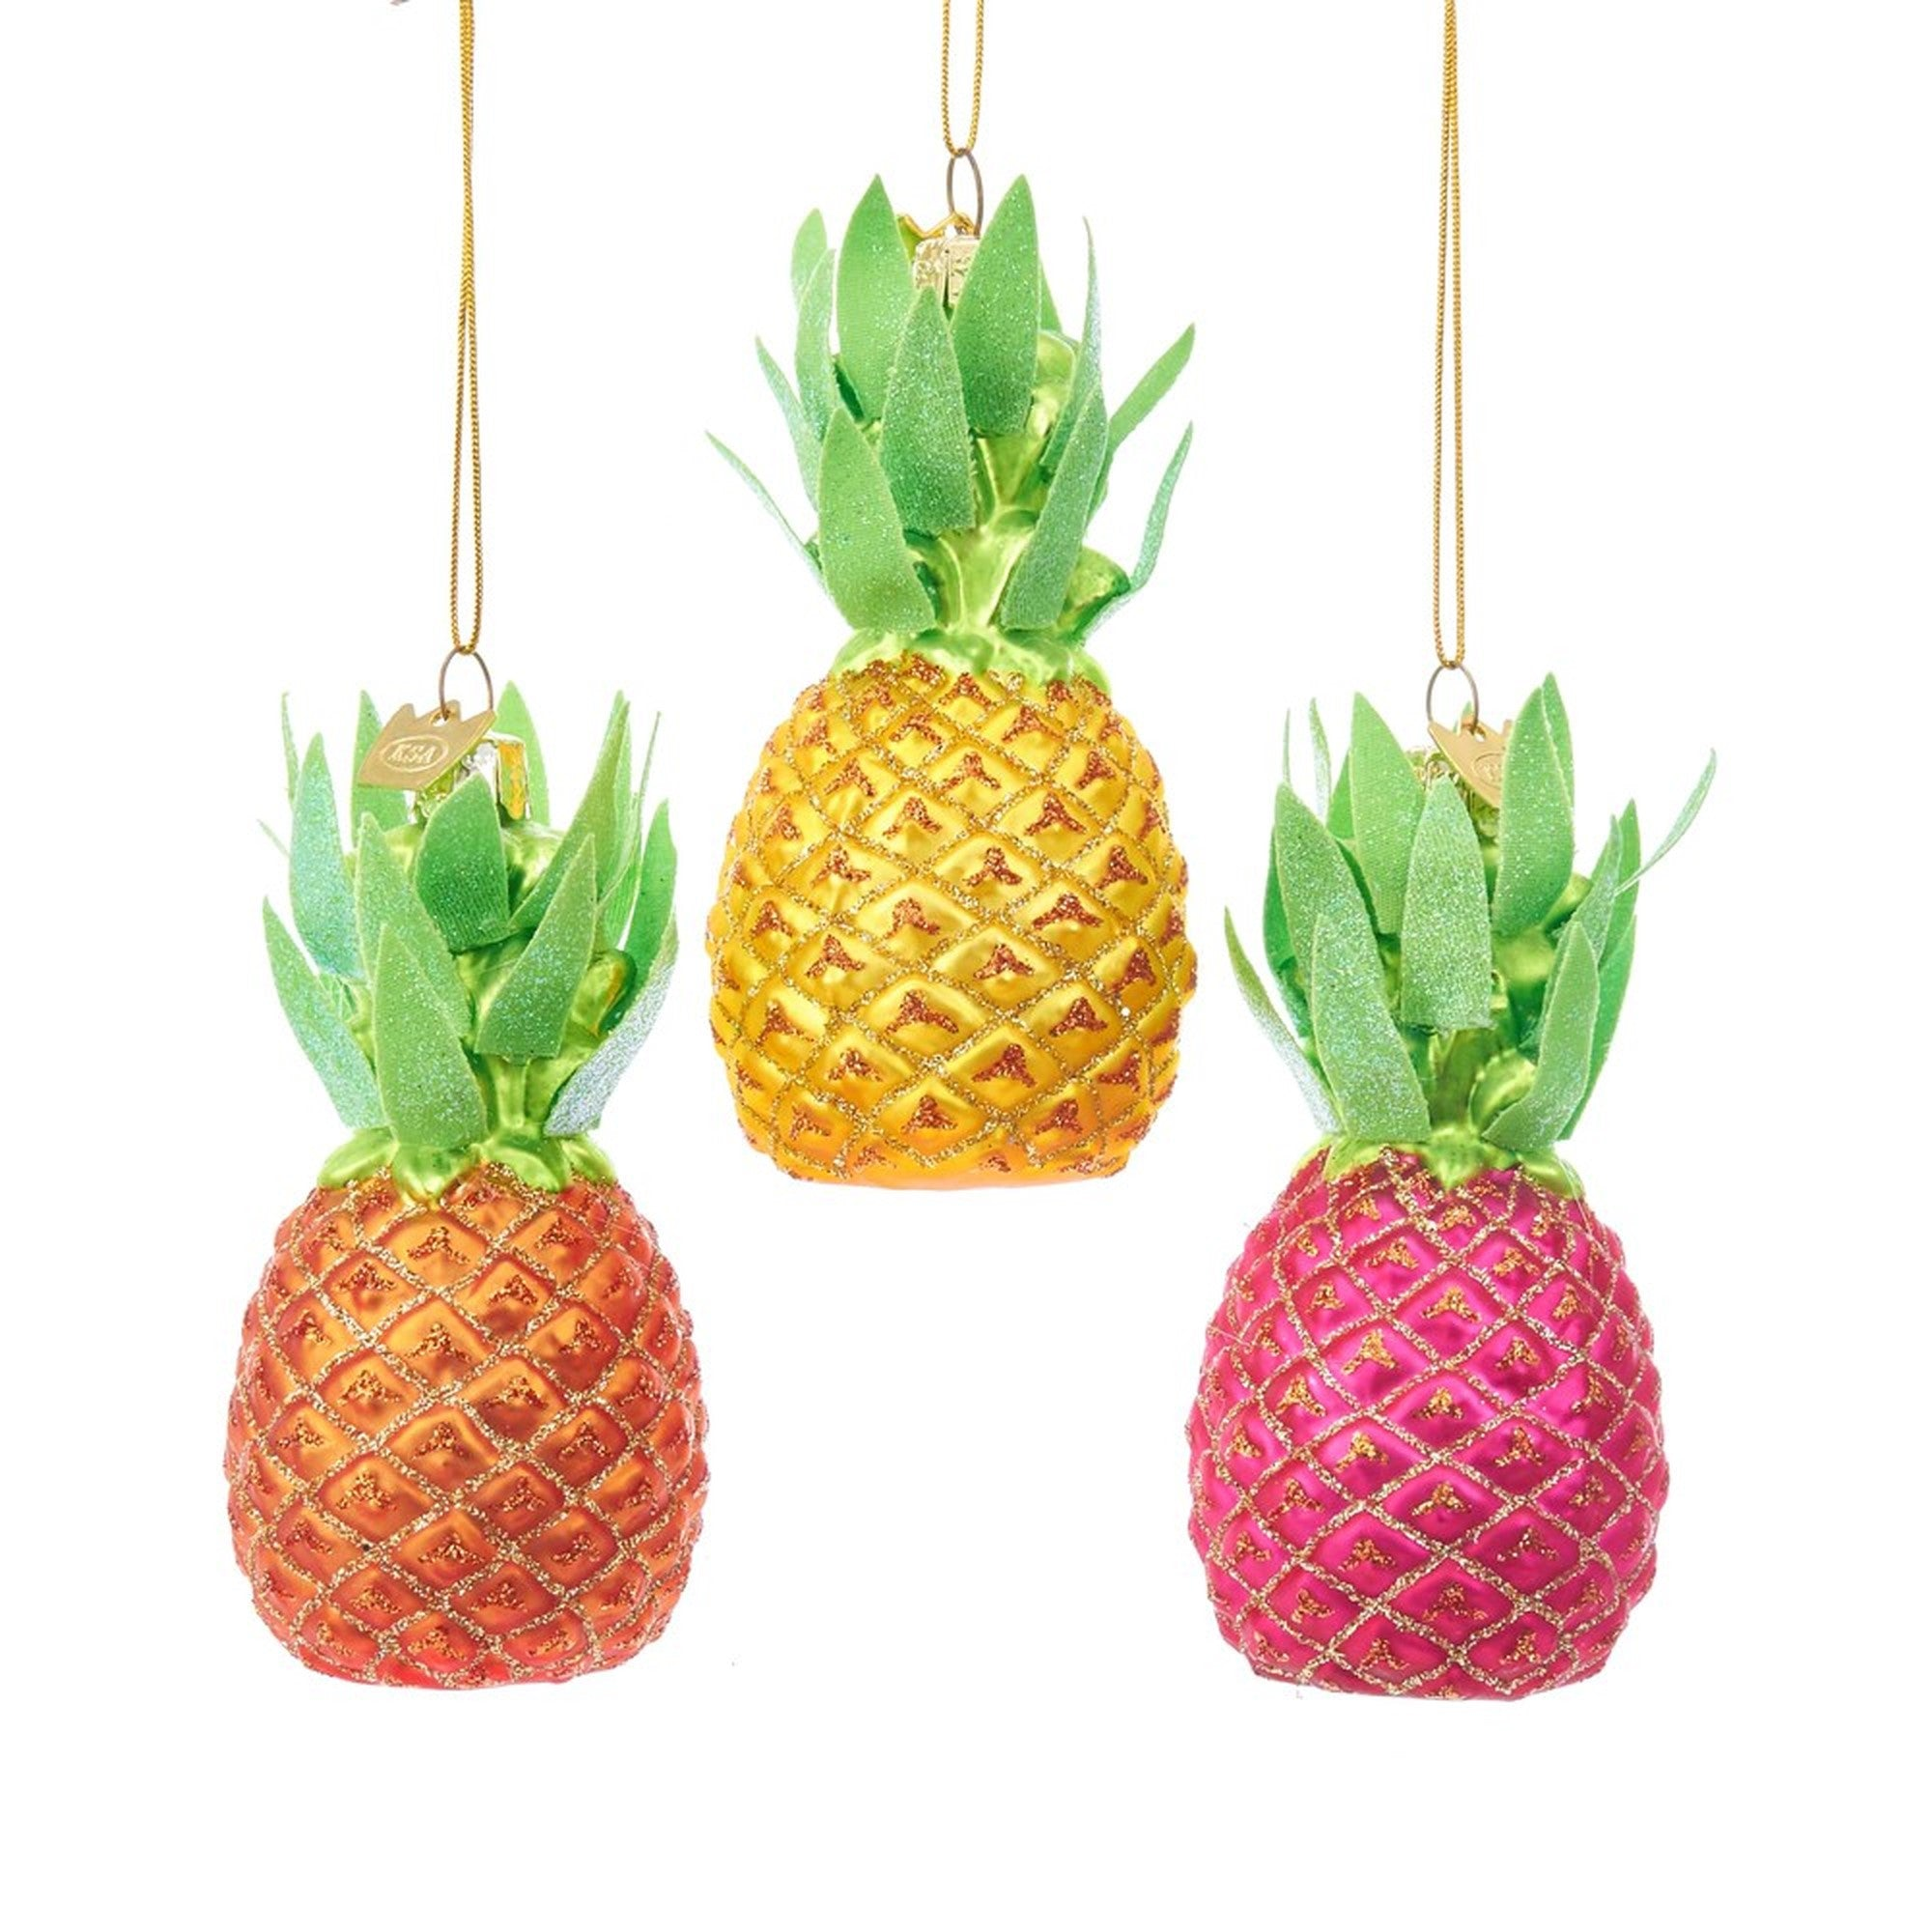 Kurt Adler Noble Gems Glass Pineapple Ornament